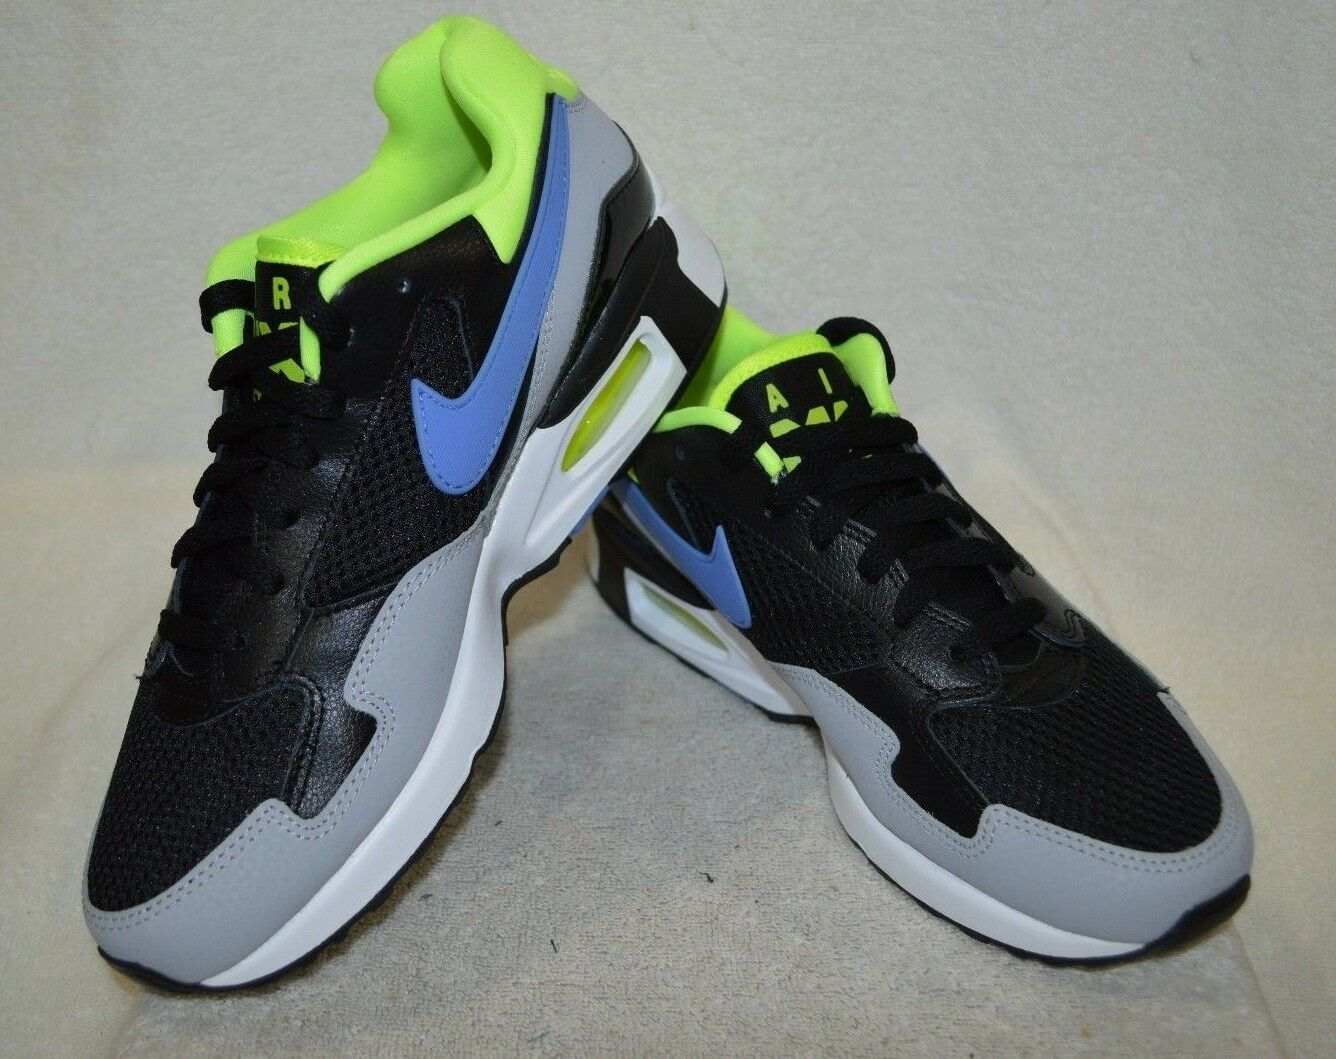 Nike Air Max ST Black Black Black Polar Volt Grey Women's Sneakers - Assorted Sizes 4a5aee